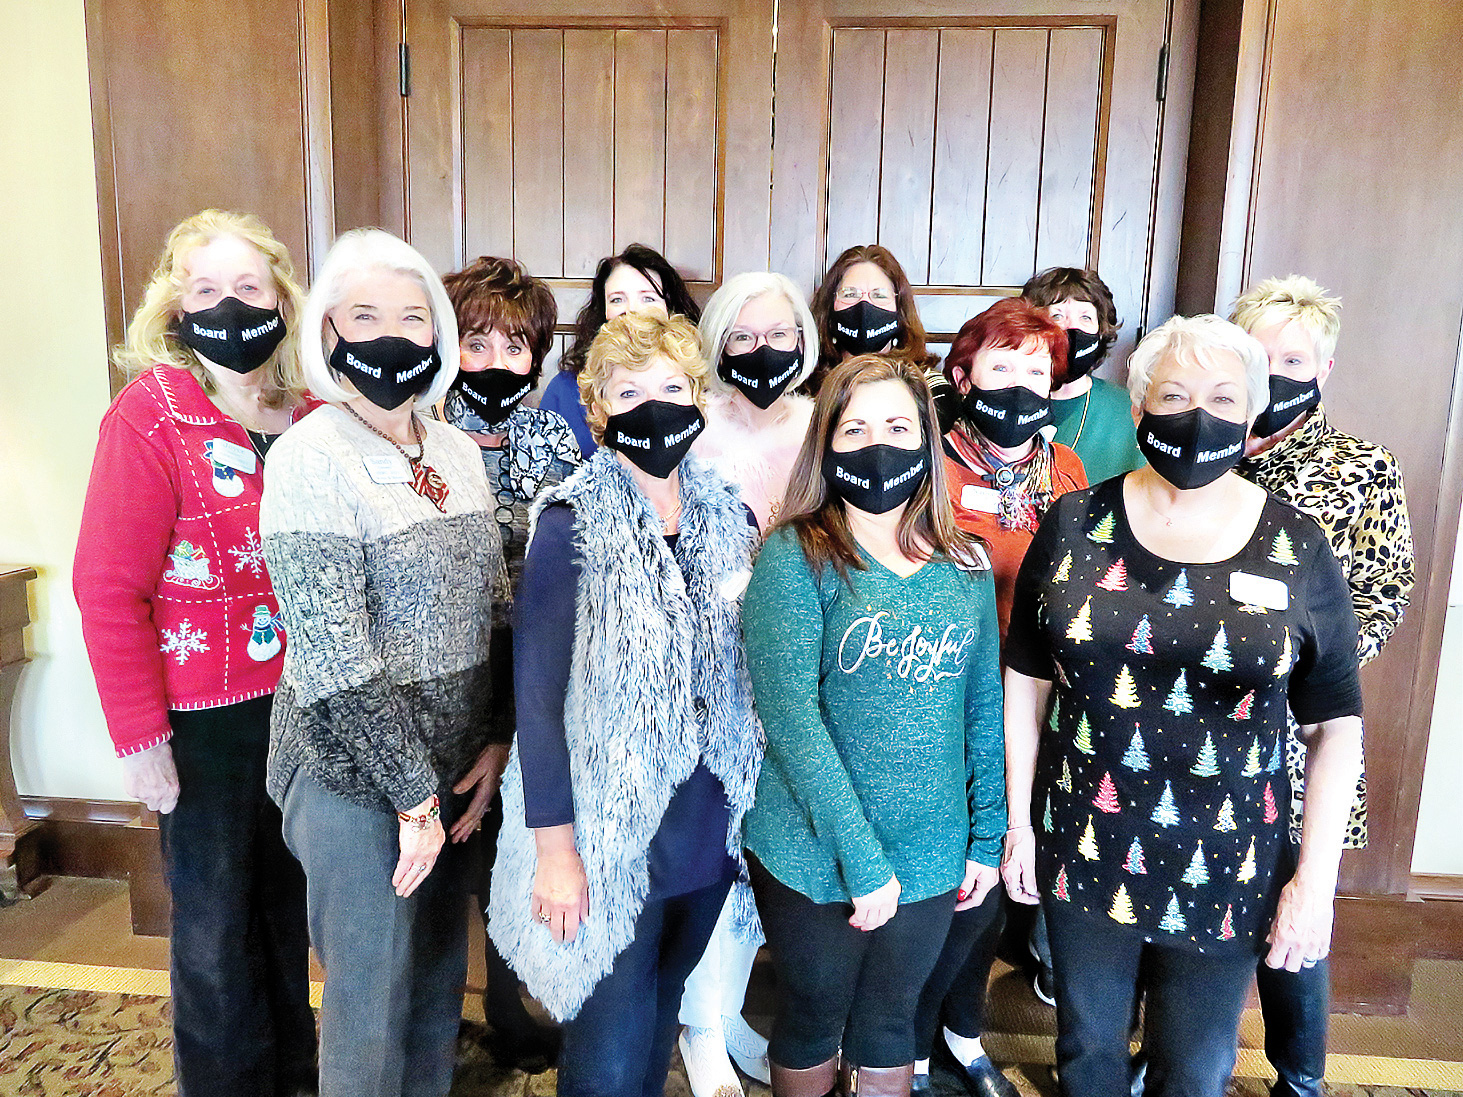 Women's Club Board for 2021 bottom row (left to right): Sandy Conwell, Donna Gardner, Sally Monge, and Darla Mahan; middle row: Joyce Ambre, Deanna Sico, Terri Bush, Nanci Odom, and Lucille Zimmerman; top row: Lisa Olson, Pam Dotson, and Barb Cummins